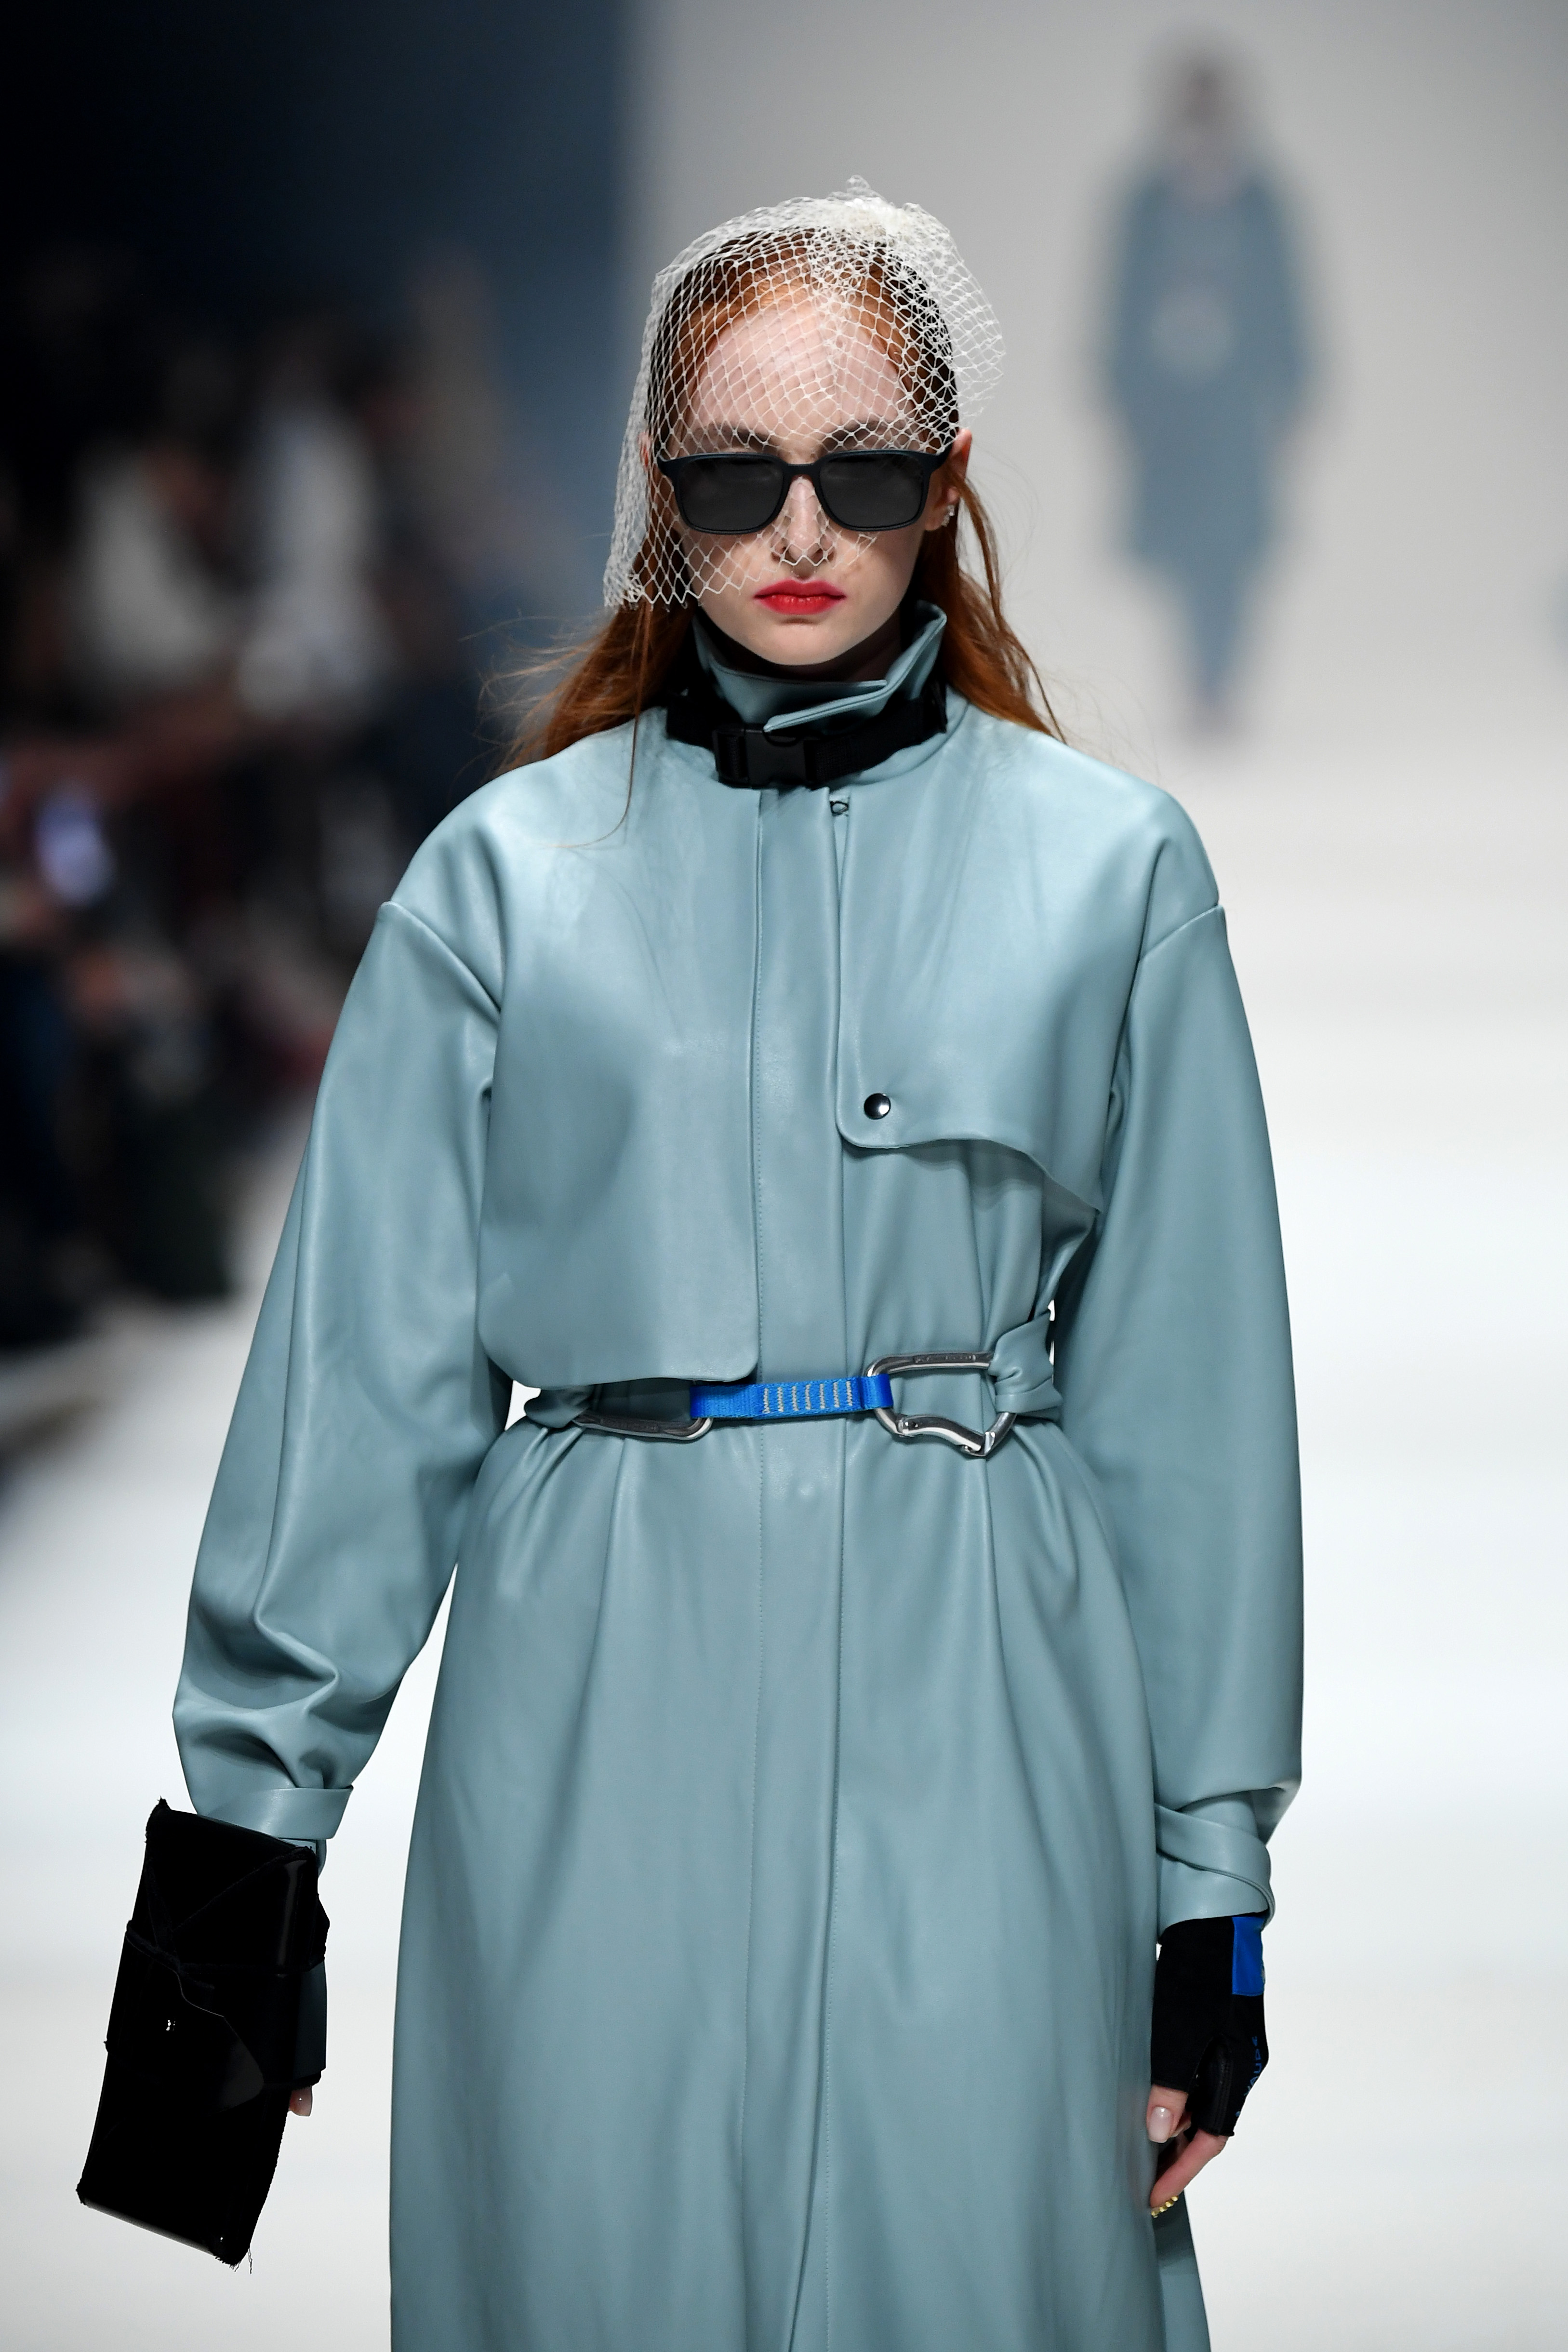 BERLIN, GERMANY - JANUARY 14: A model wearing a coat by Miomartha, headpiece by Spatz Hutdesign, glasses by Neubau Eyewear, gloves by Vaude and a bag by Esther Perbandt walks the runway at the Neonyt show during Berlin Fashion Week Autumn/Winter 2020 at Kraftwerk Mitte on January 14, 2020 in Berlin, Germany. (Photo by John Phillips/Getty Images for MBFW)